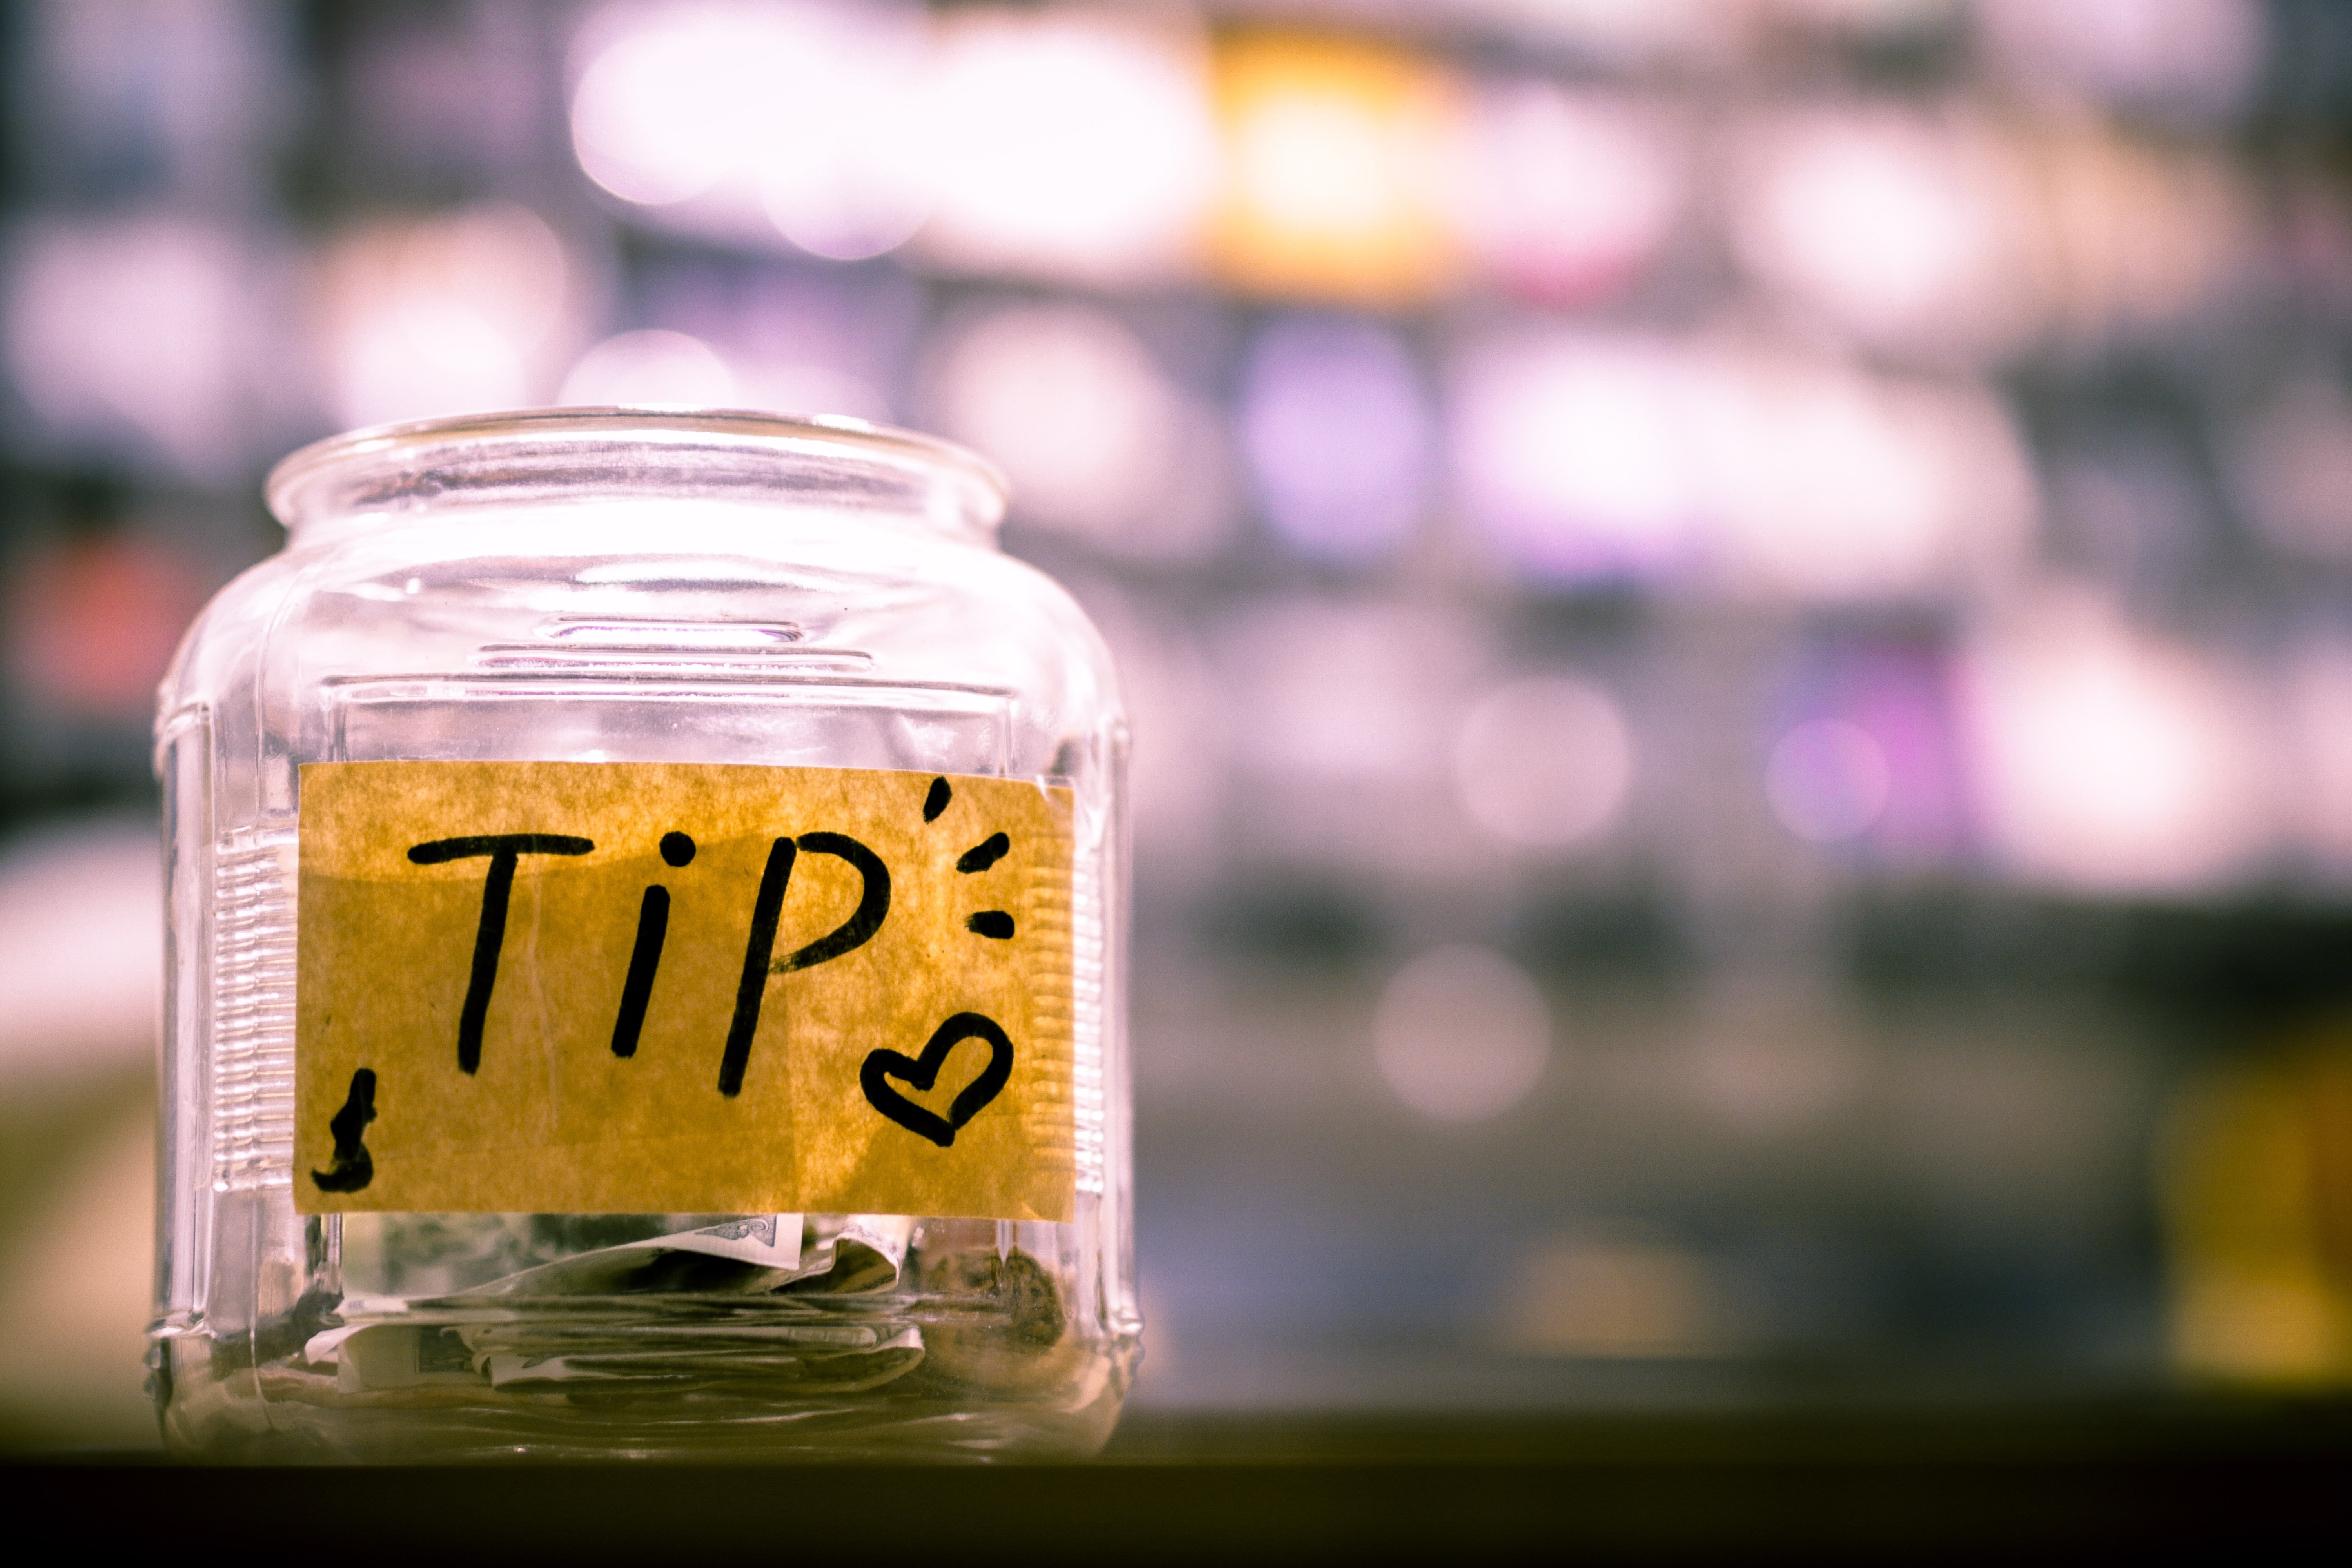 A tip jar | Source: Unsplash.com